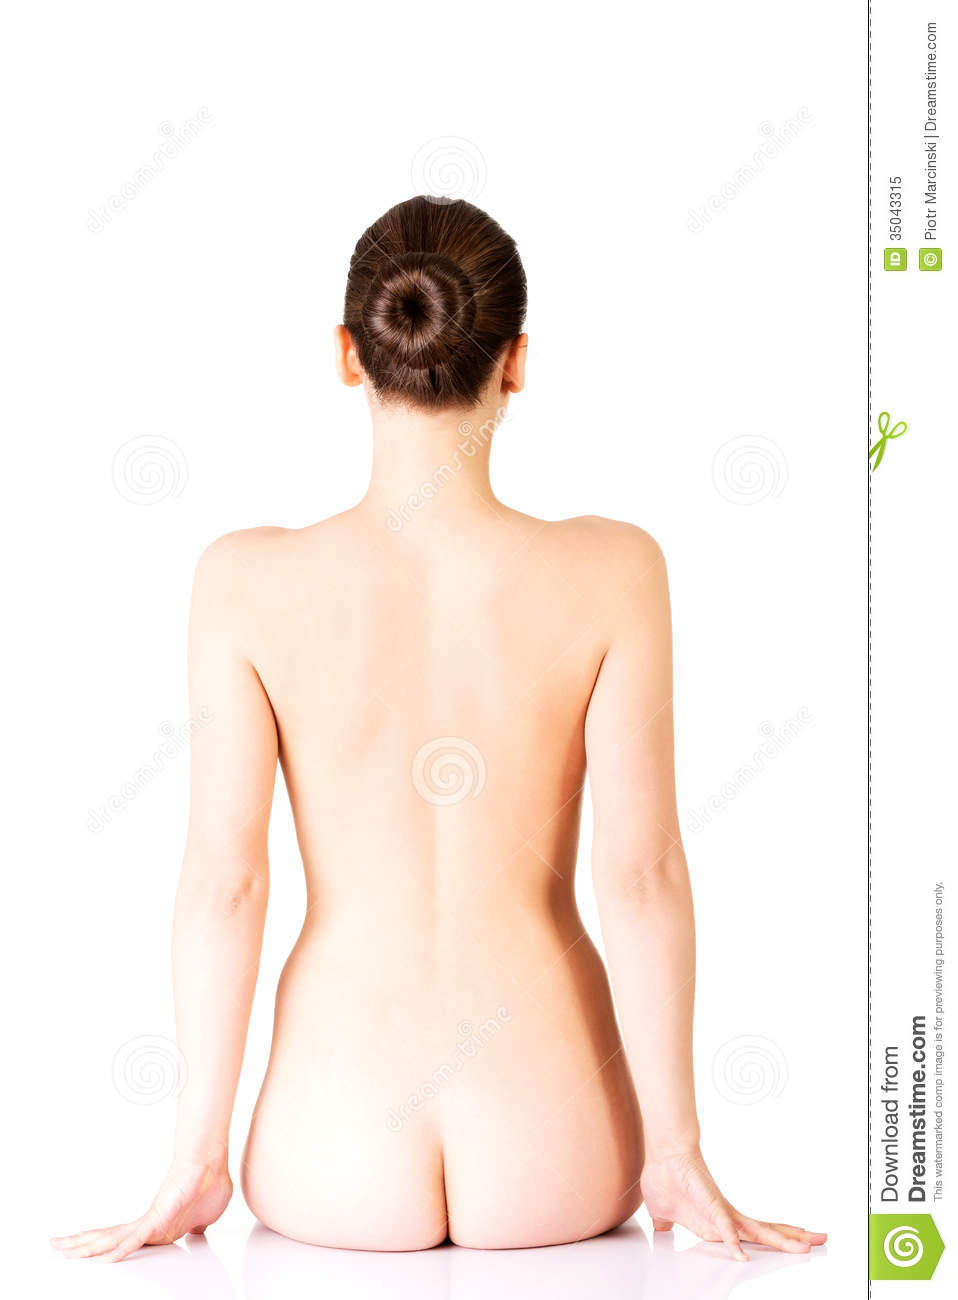 Photos of beutifull naked back